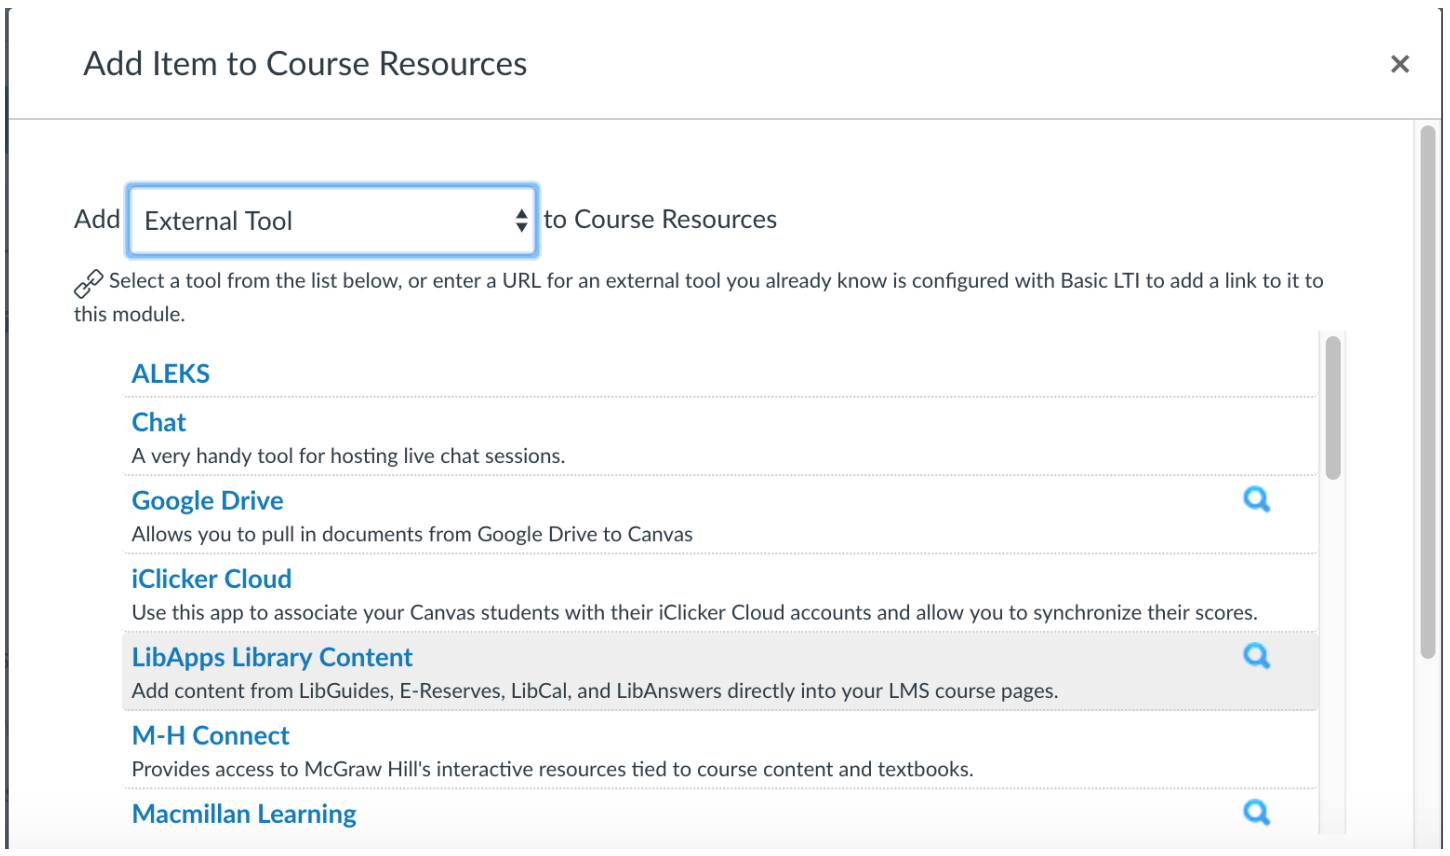 Add Item to Course Resources